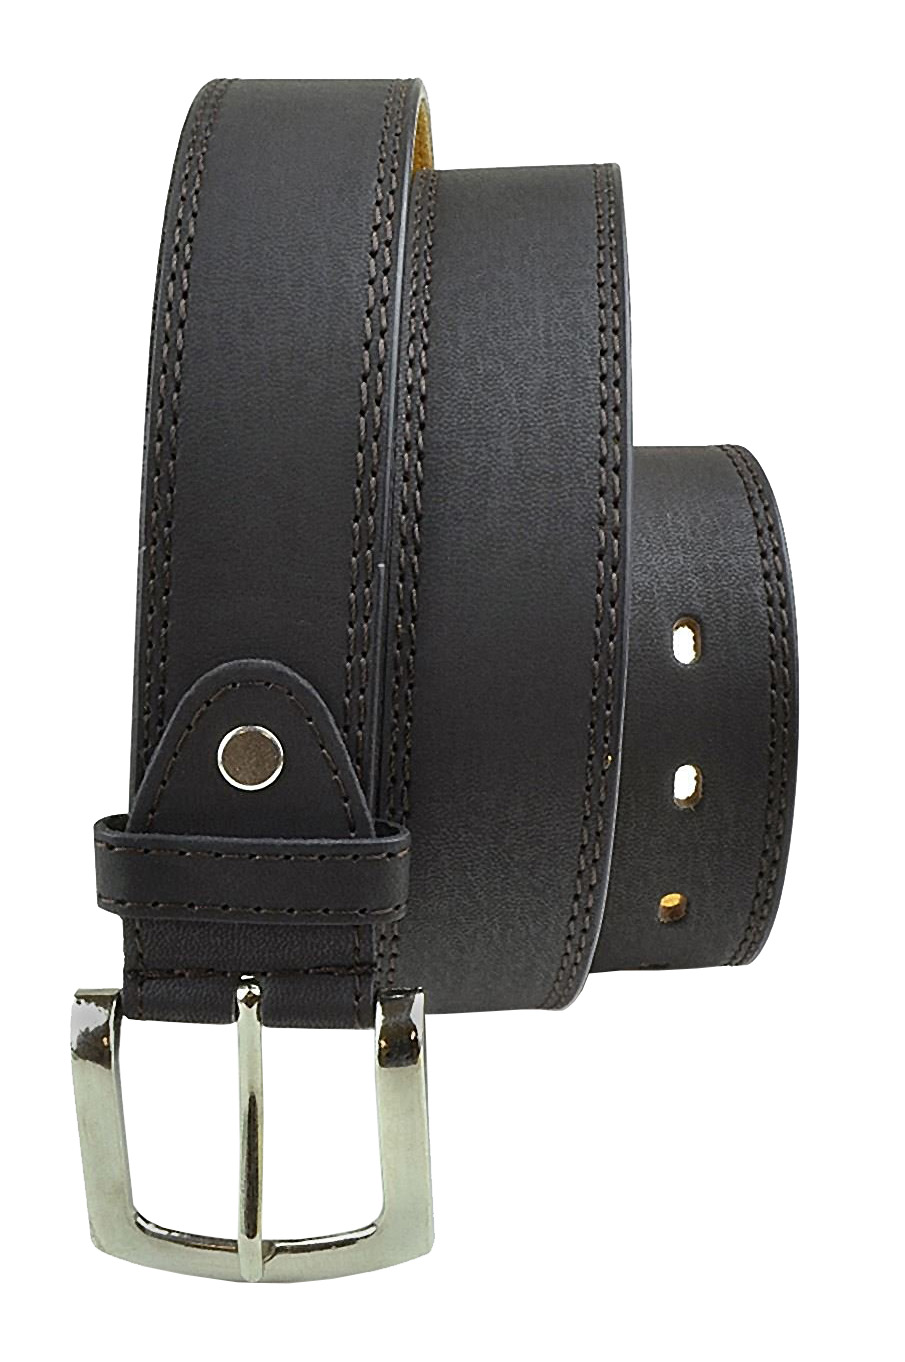 Men's Genuine Leather Belt in Versatile Casual or Formal Style - Brown/M